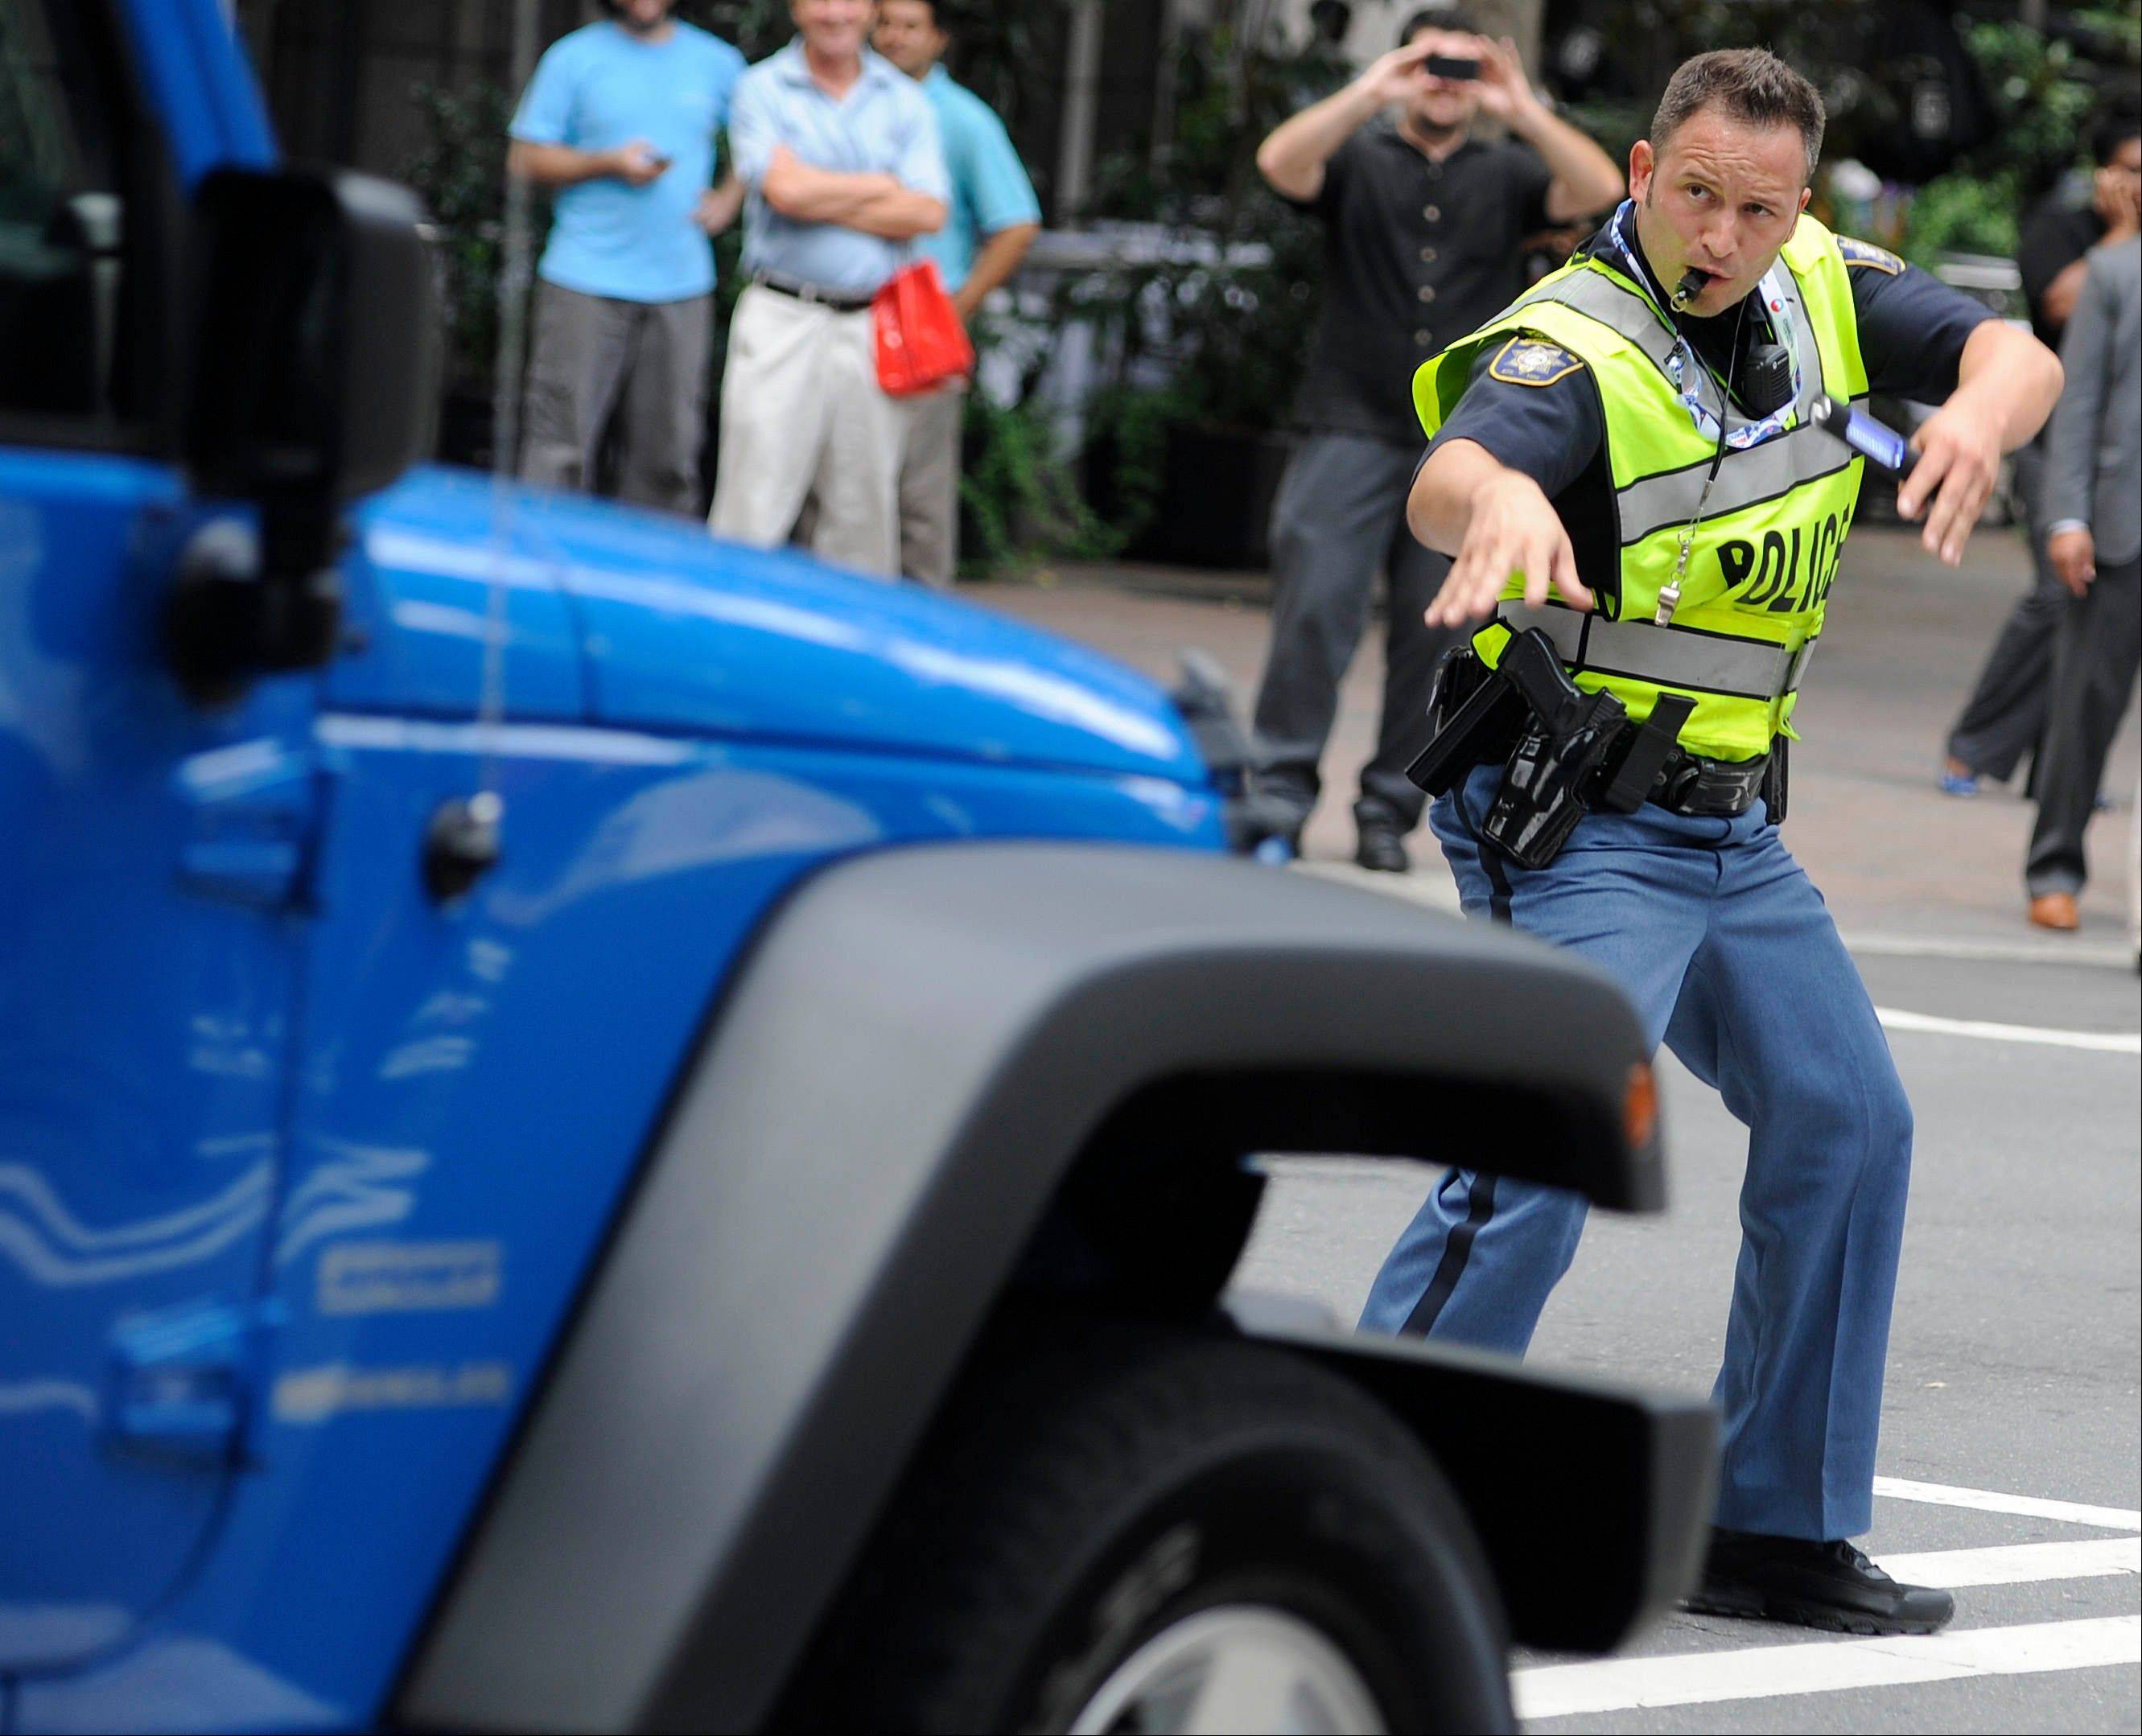 Clayton County (Ga.) Sheriff's Deputy John Strutko dances as he directs traffic Wednesday, Sept. 5, 2012, in Charlotte, N.C., during the second day of the Democratic National Convention.